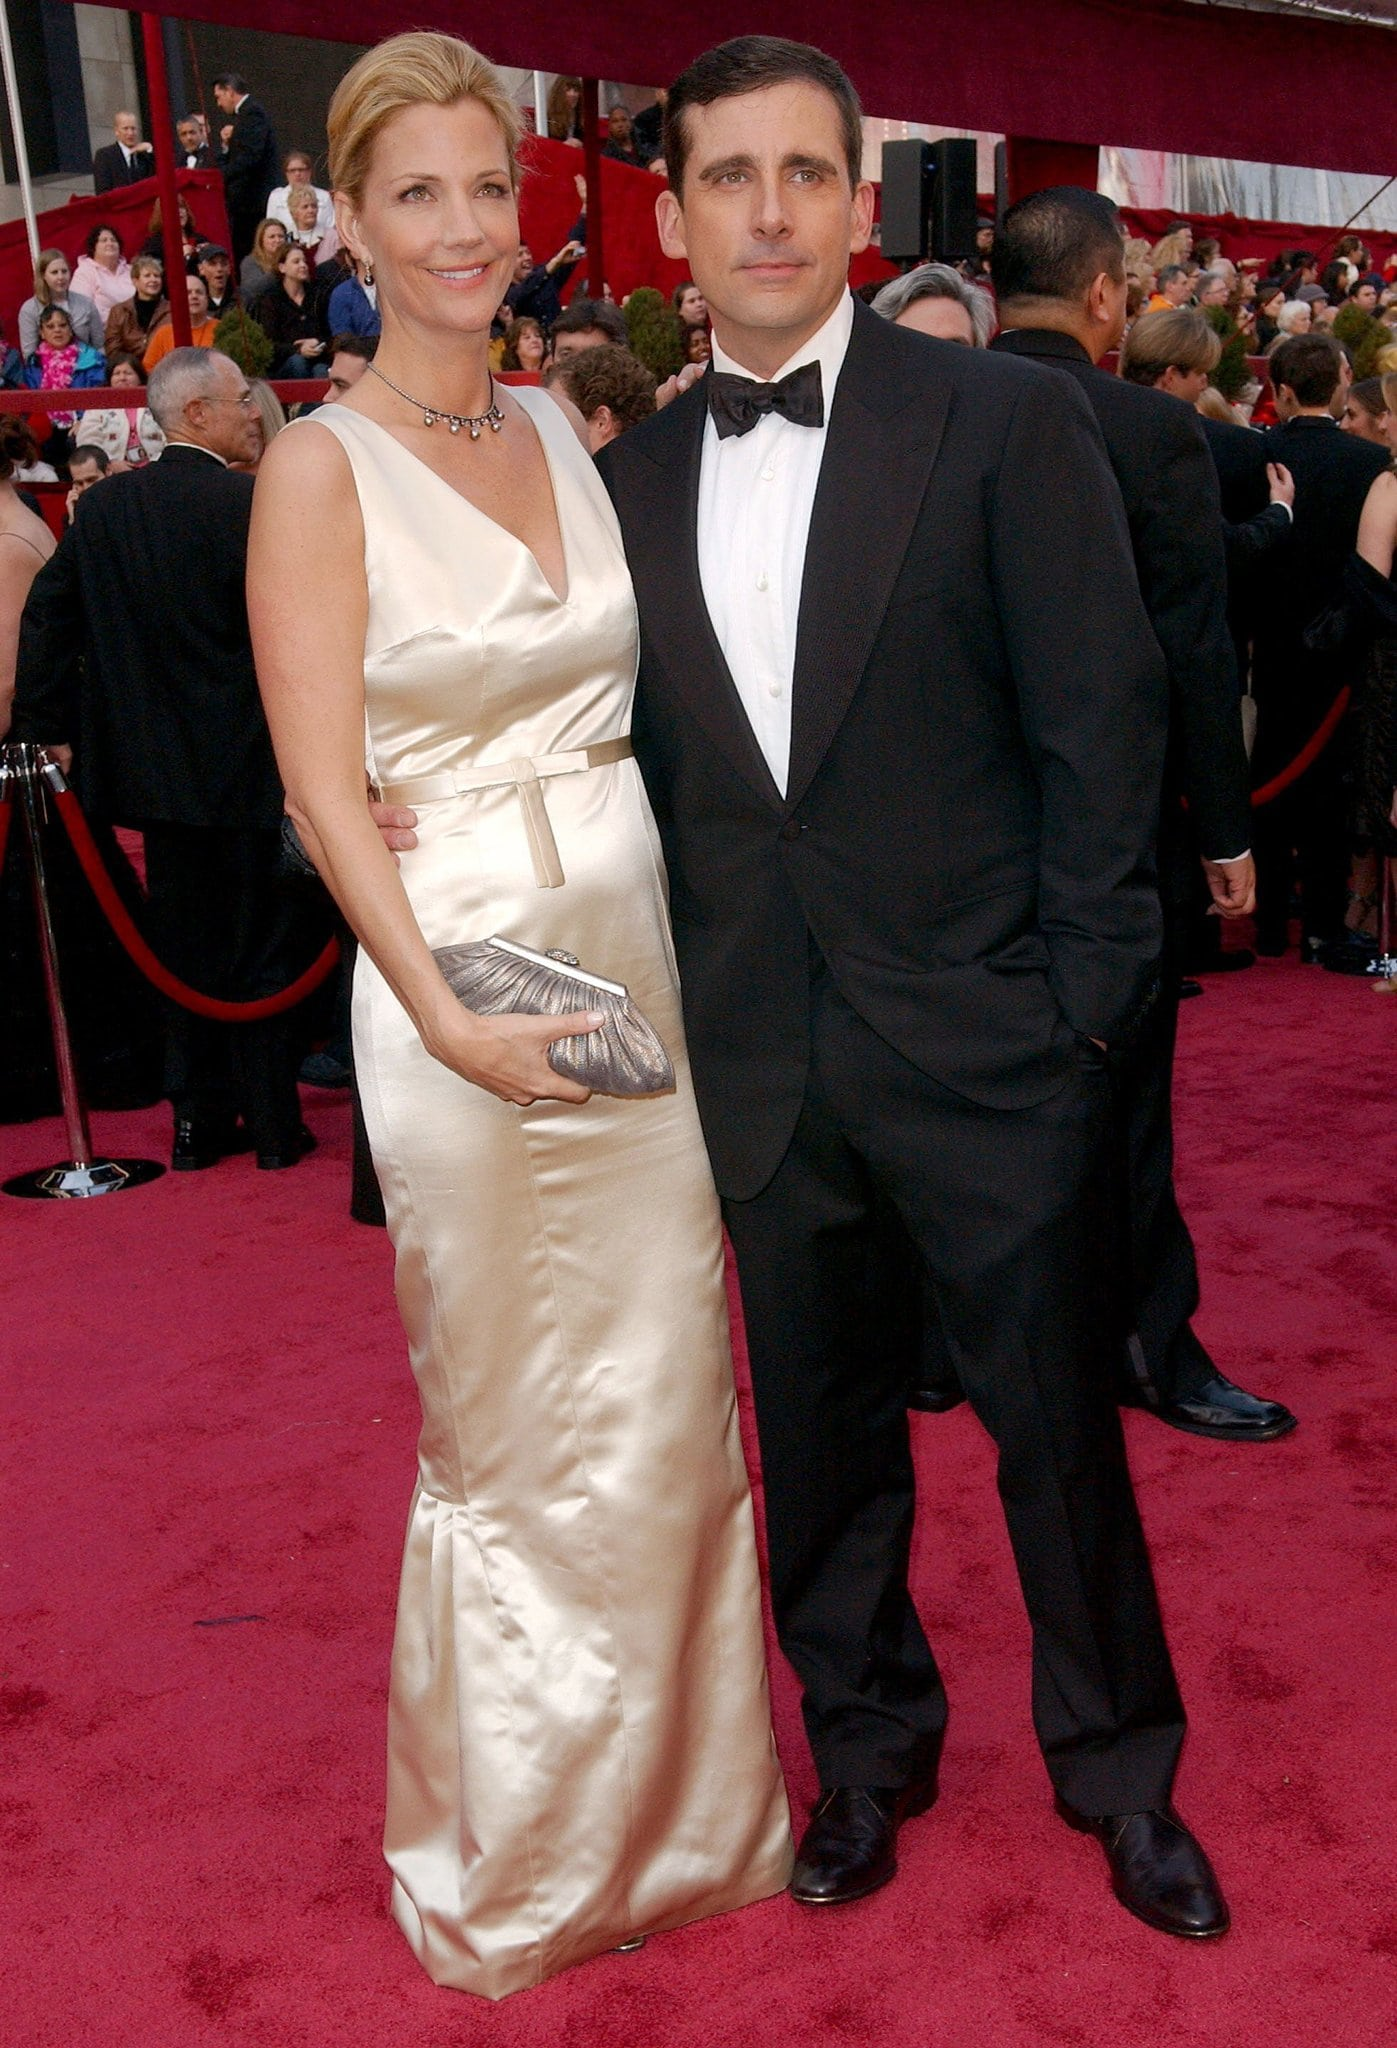 Nancy Carell and Steve Carell relocated to New York City after getting married in 1995